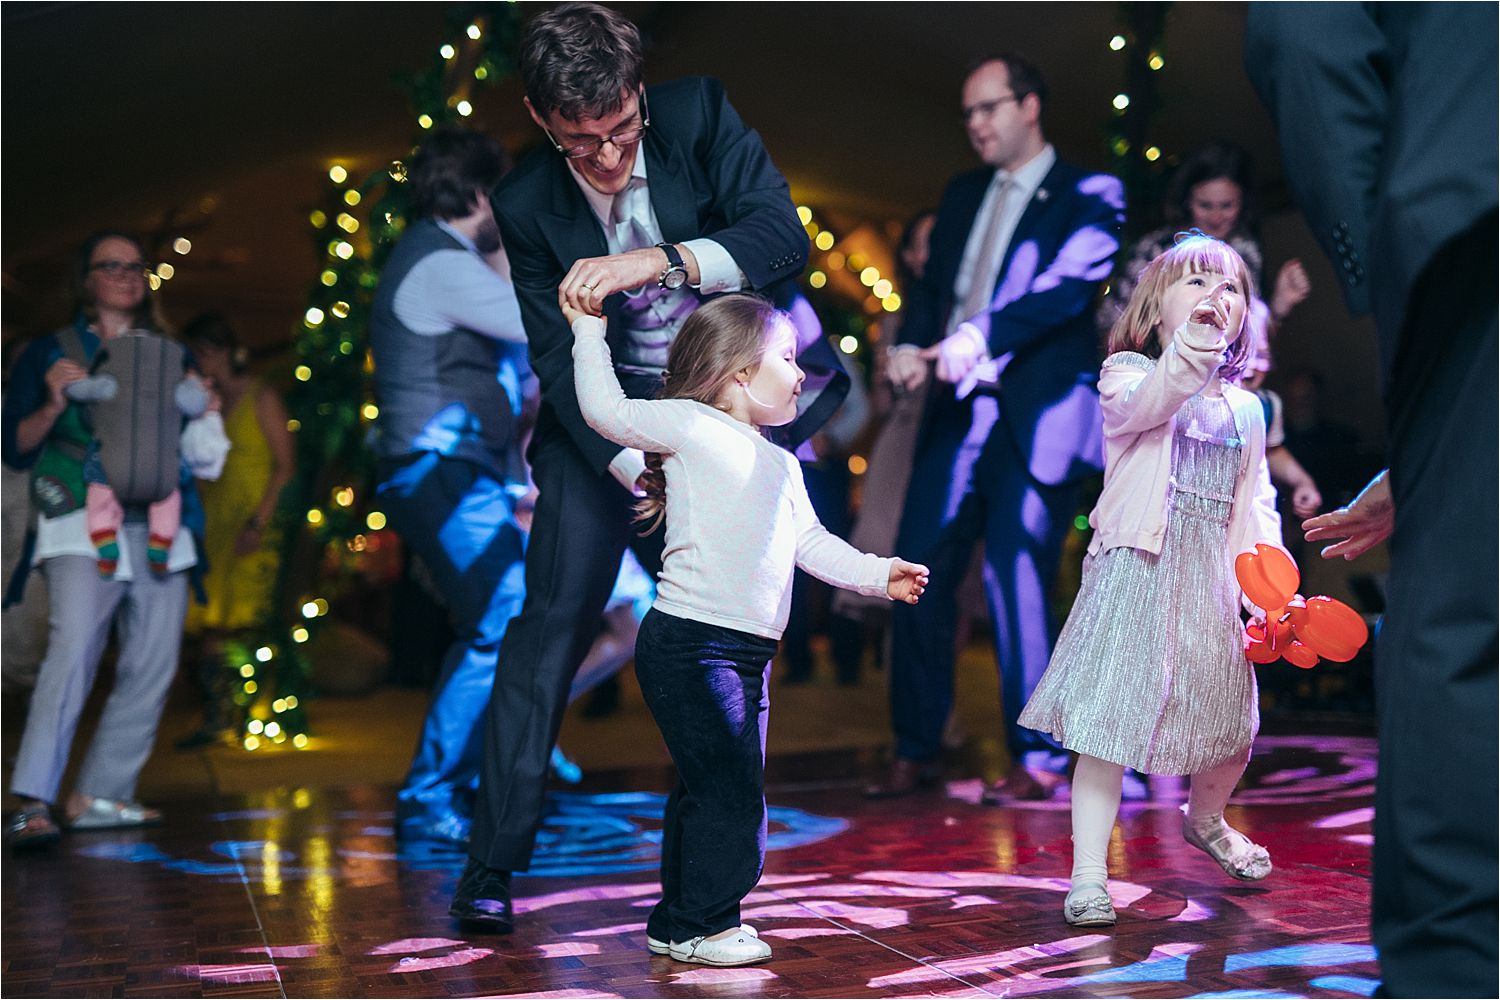 Little dancers on the dancefloor of rural Manchester tipi wedding